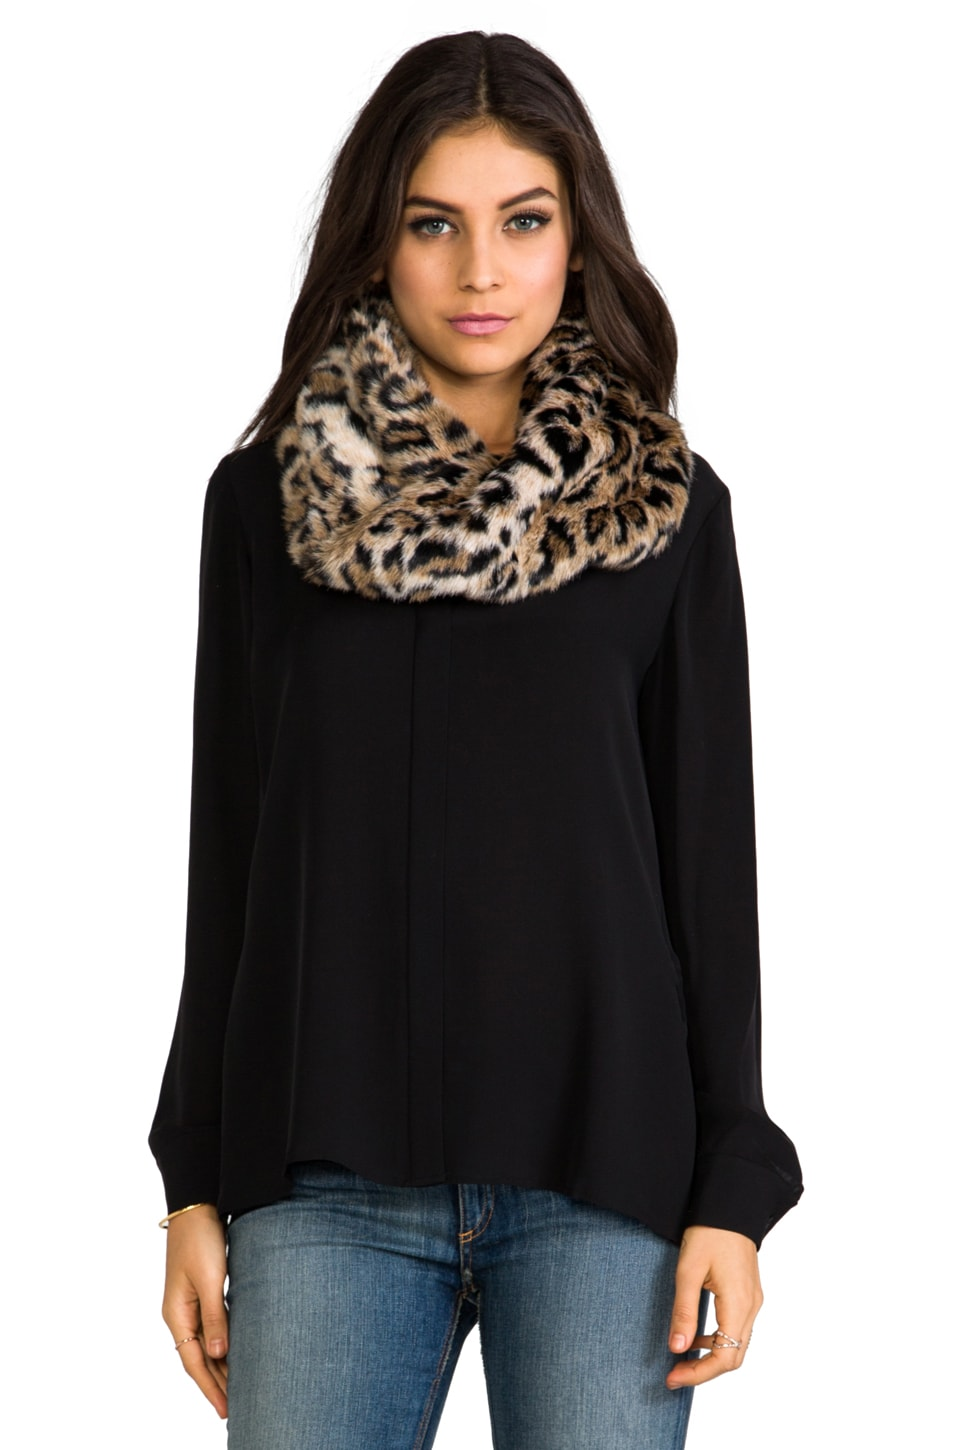 Juicy Couture Faux Fur Infinity Scarf in Leopard